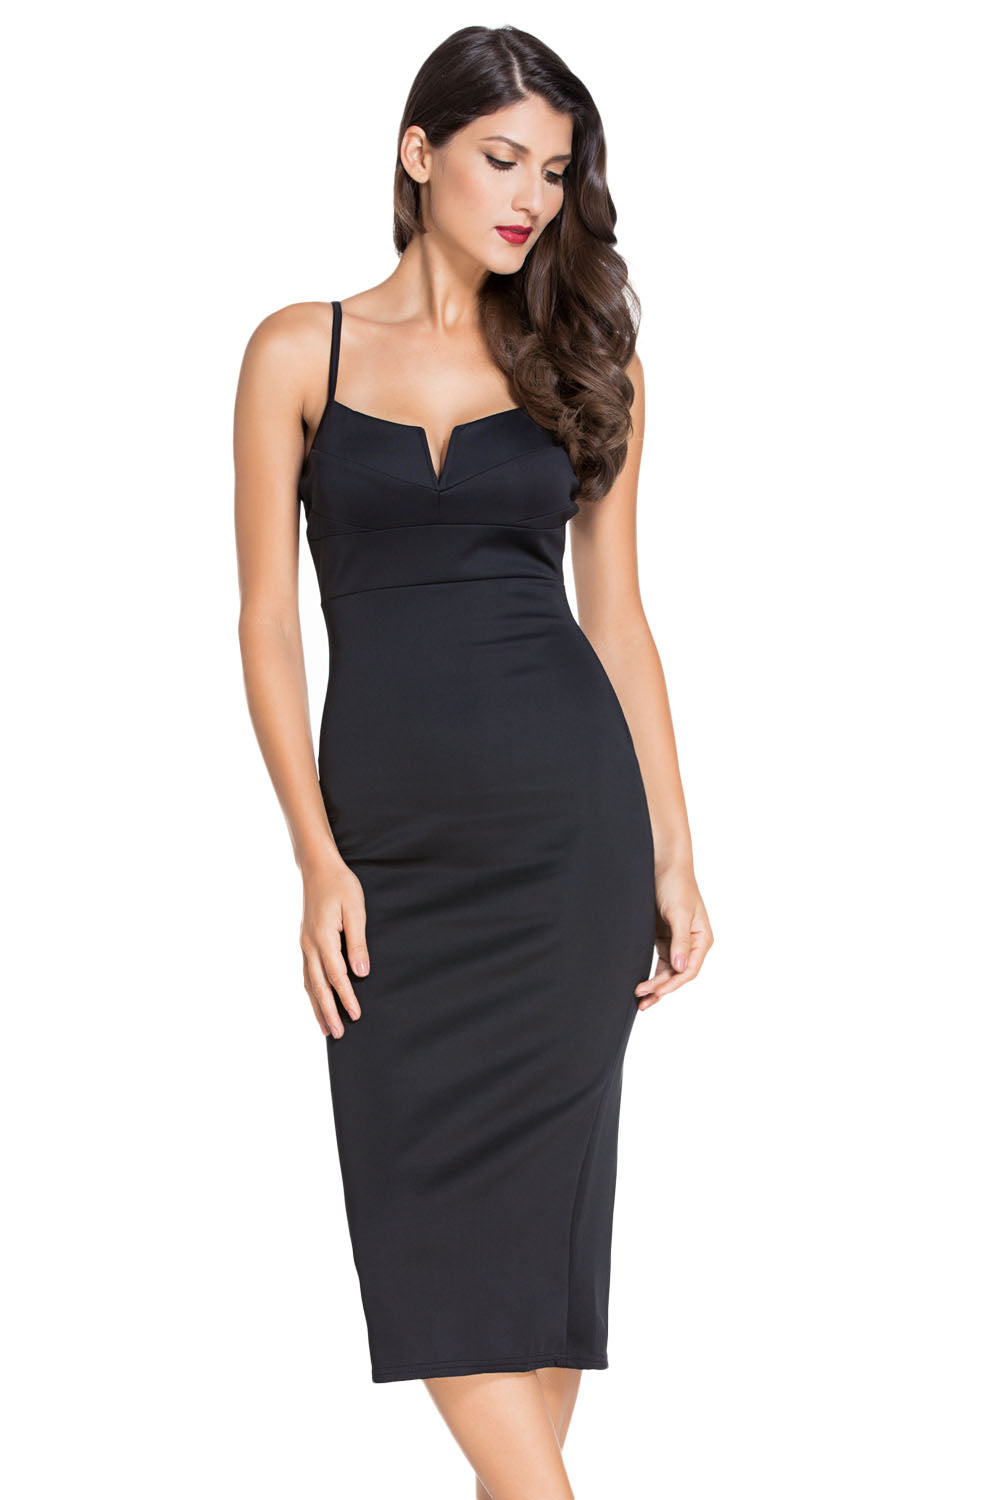 a91ec64d7bed3 Sexy Black Plunging V Neck Midi Dress – SEXY AFFORDABLE CLOTHING